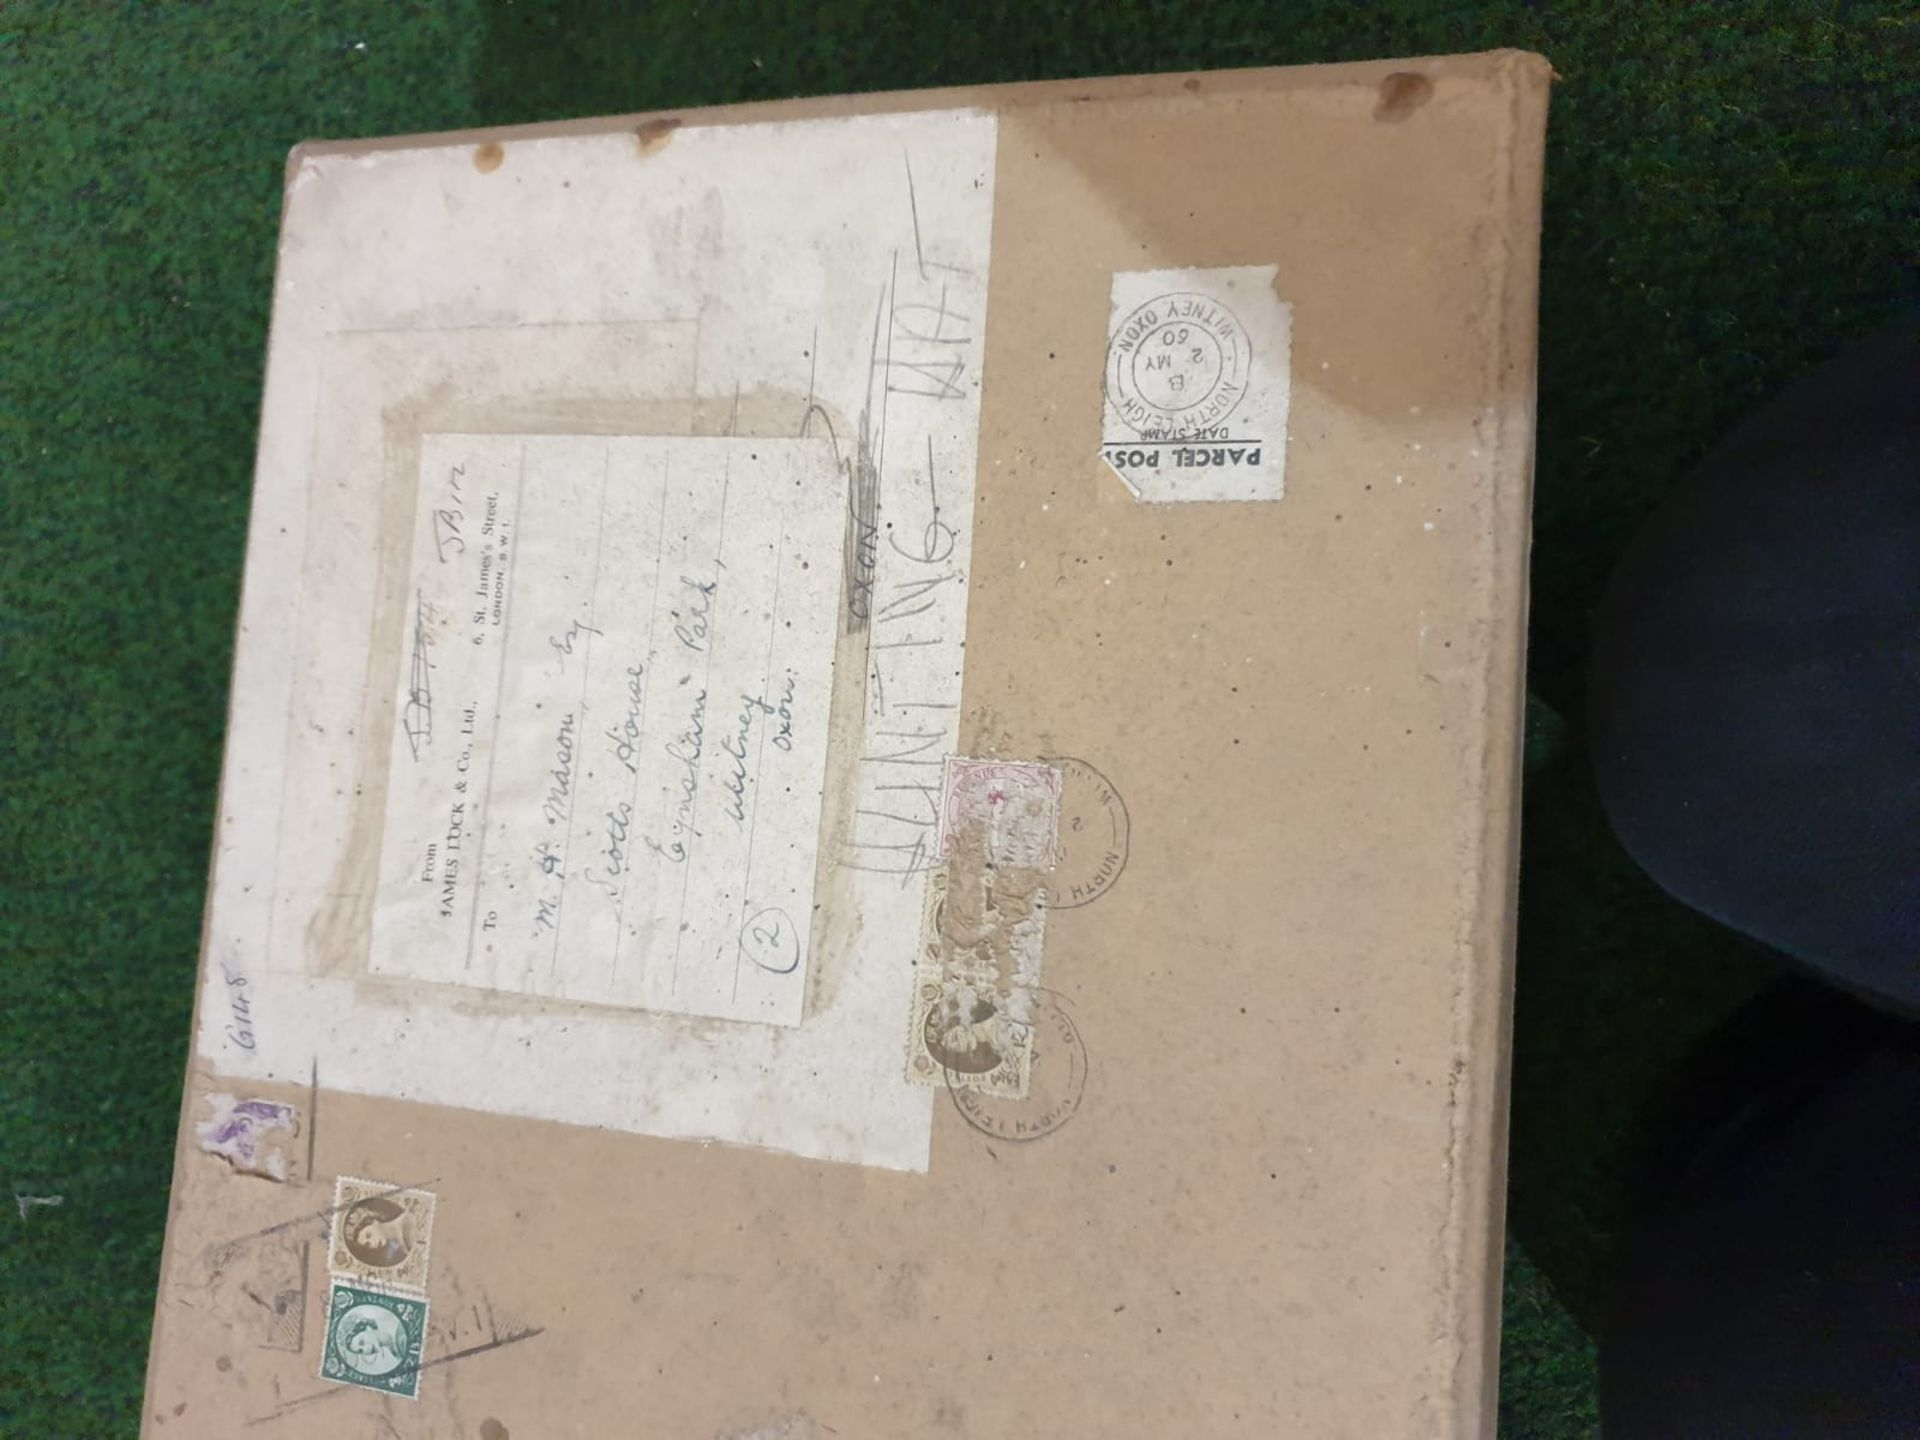 A James Lock + Co. Silk Black Top hat with original card box - Image 5 of 5